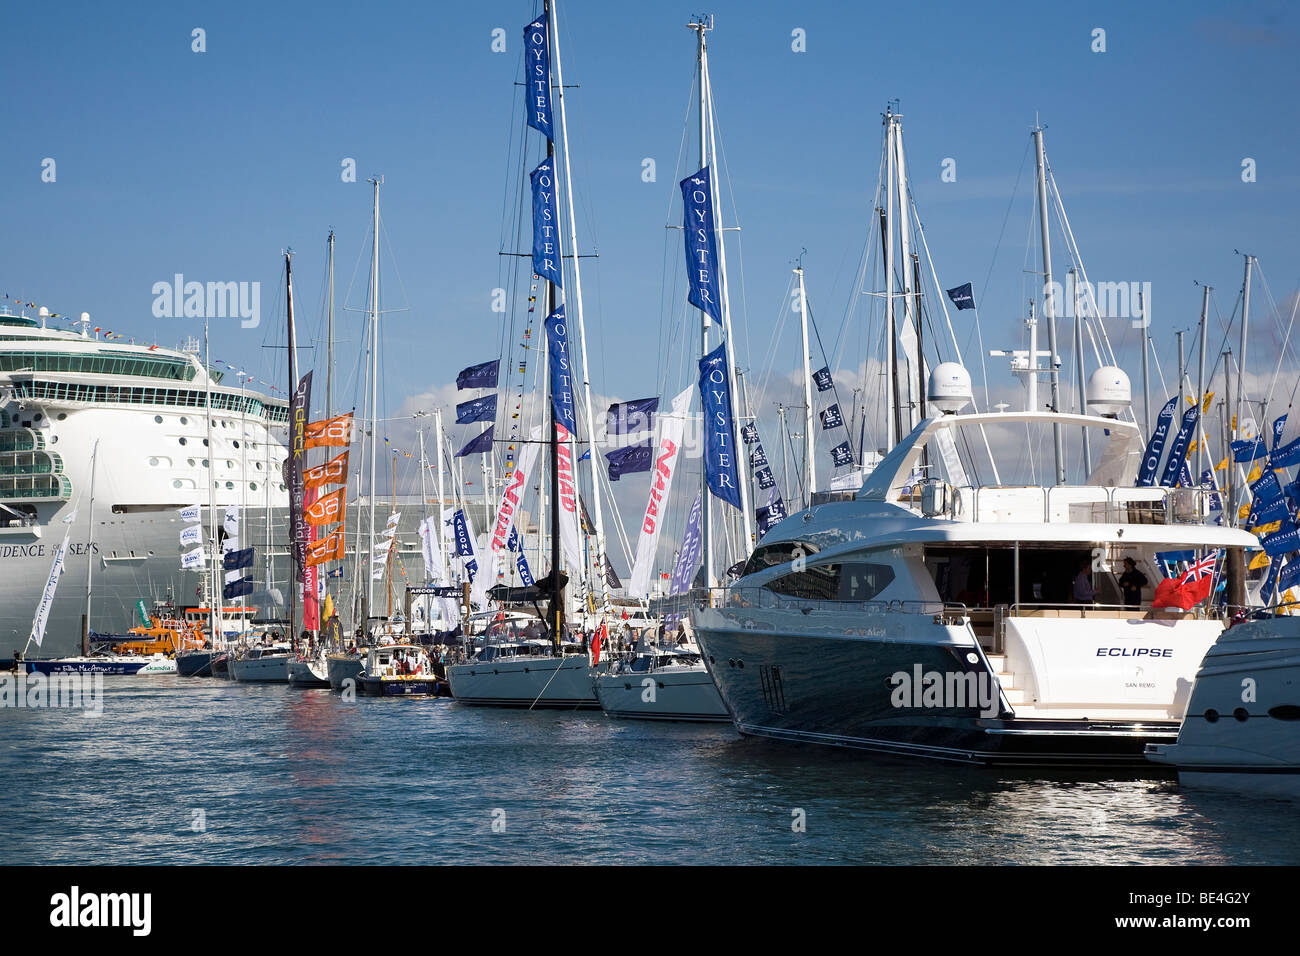 Southampton Boat Show Pontoons yacht floating flags liner success sales advertising impress wealth luxury motor - Stock Image